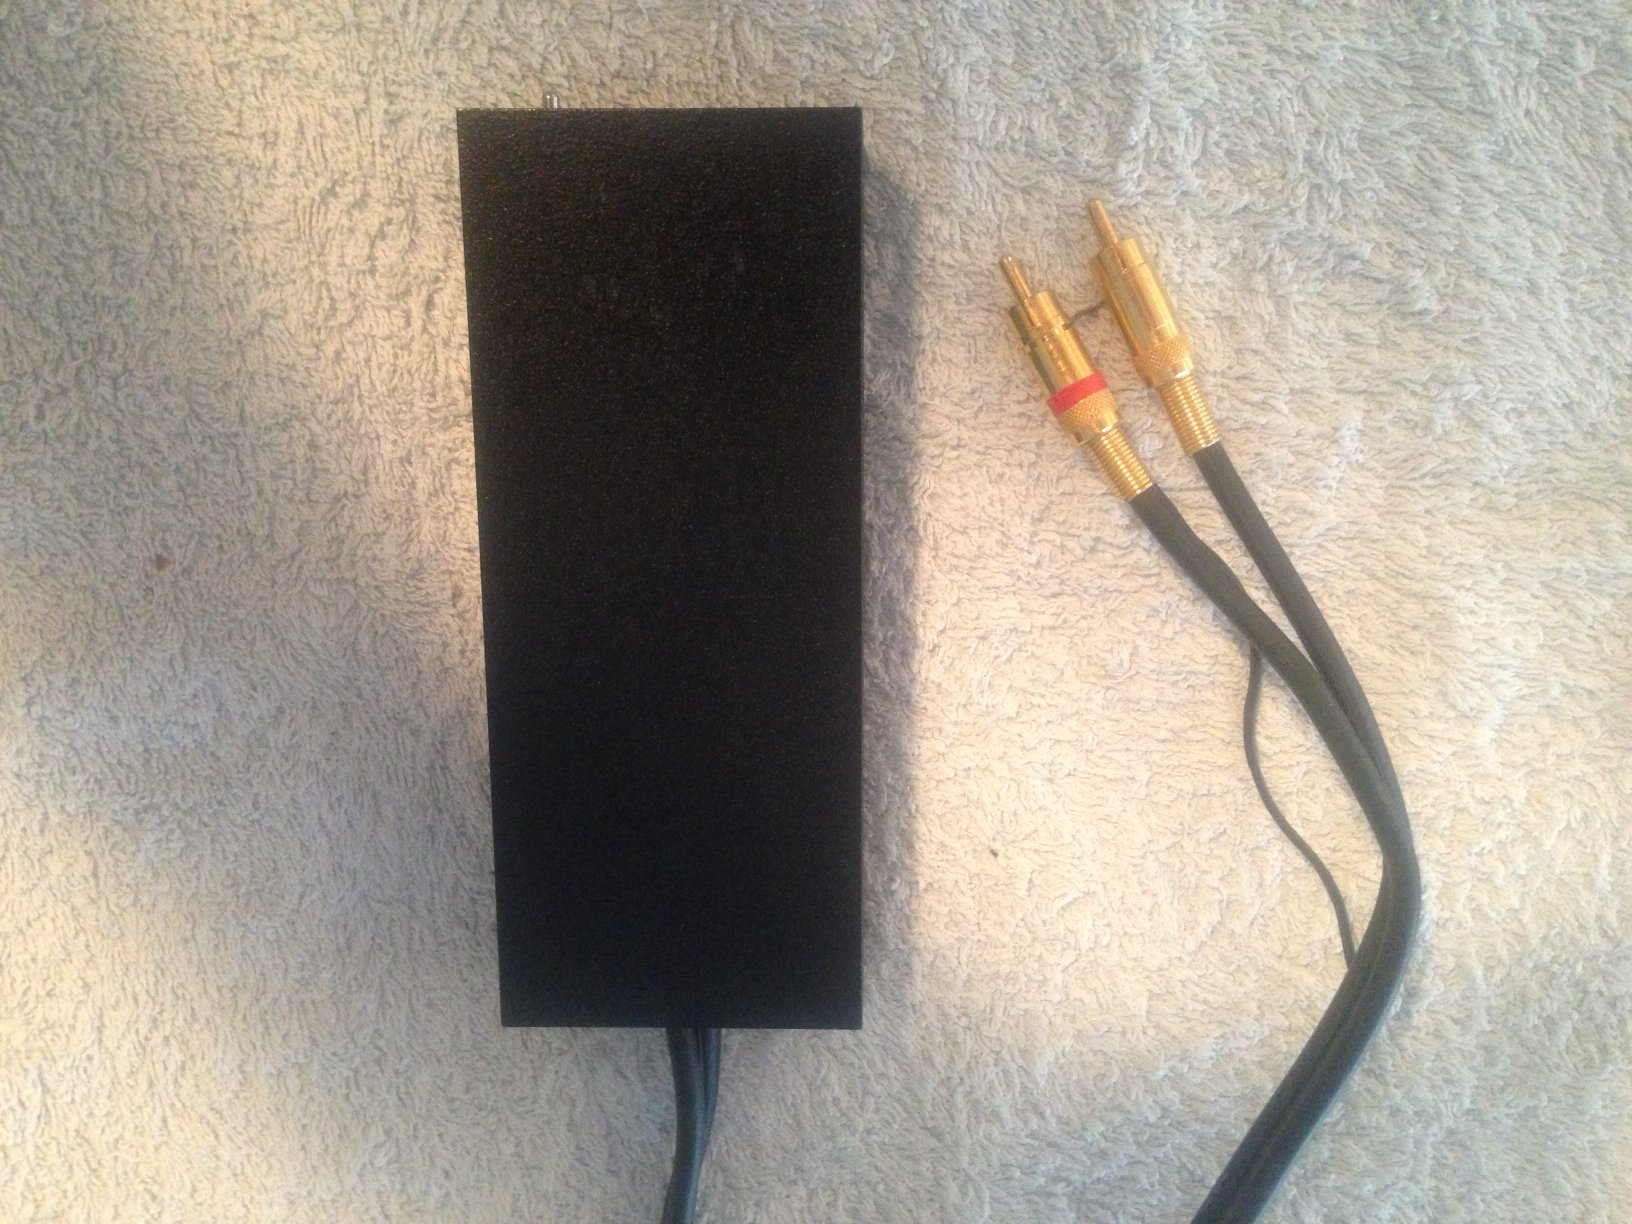 Fs Perth Lentek Battery Operated Moving Coil Head Amp Preamplifier Input From Mc 1